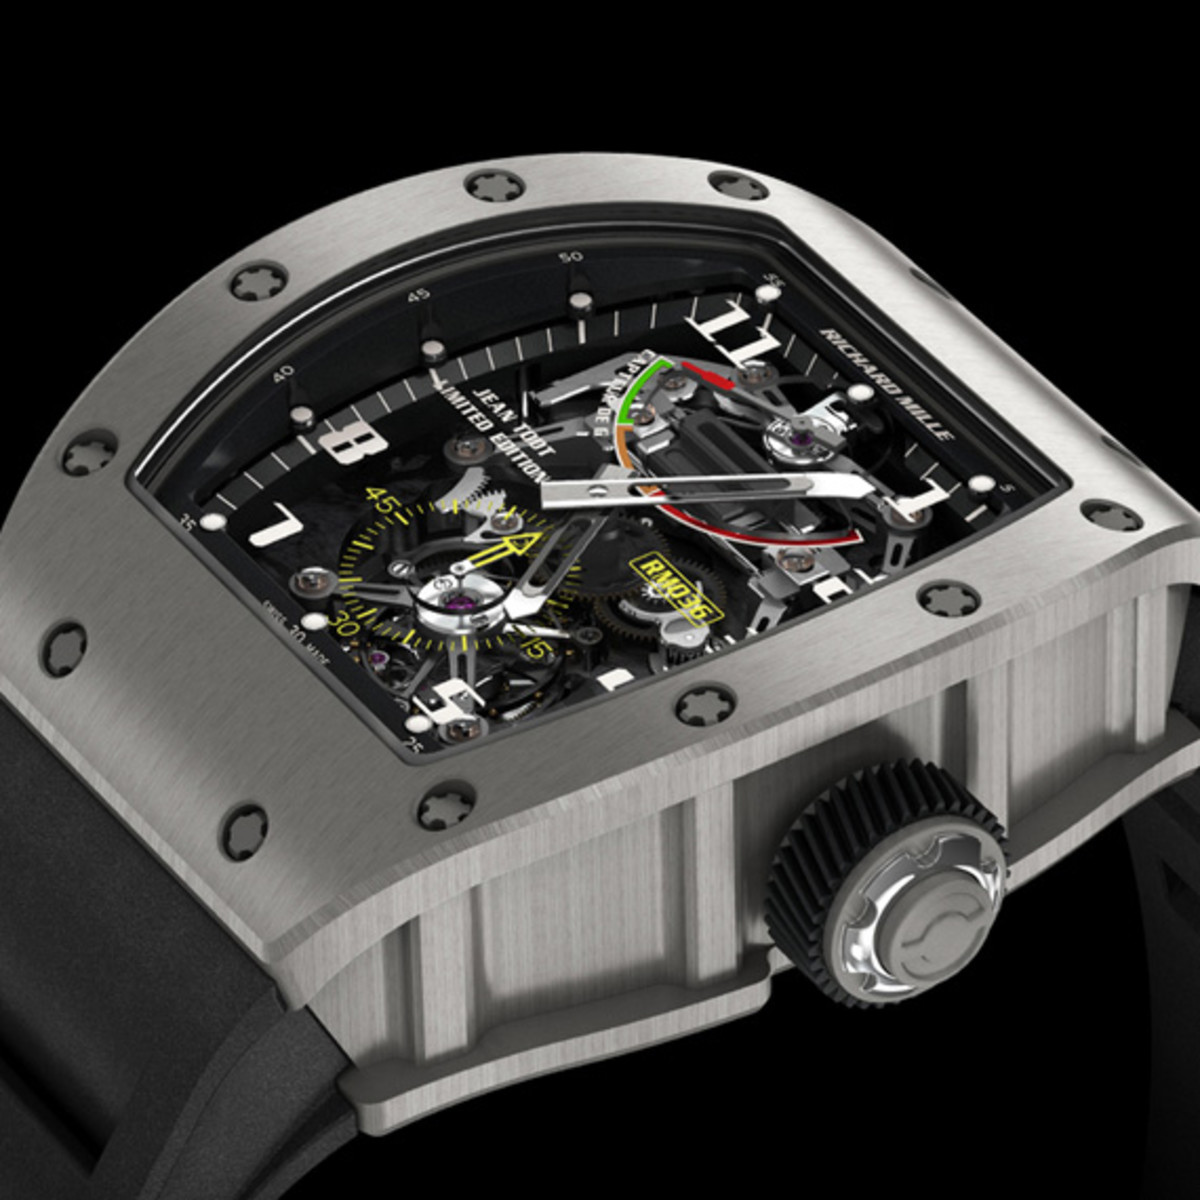 richard-mille-rm036-tourbillon-g-senor-jean-todt-watch-03